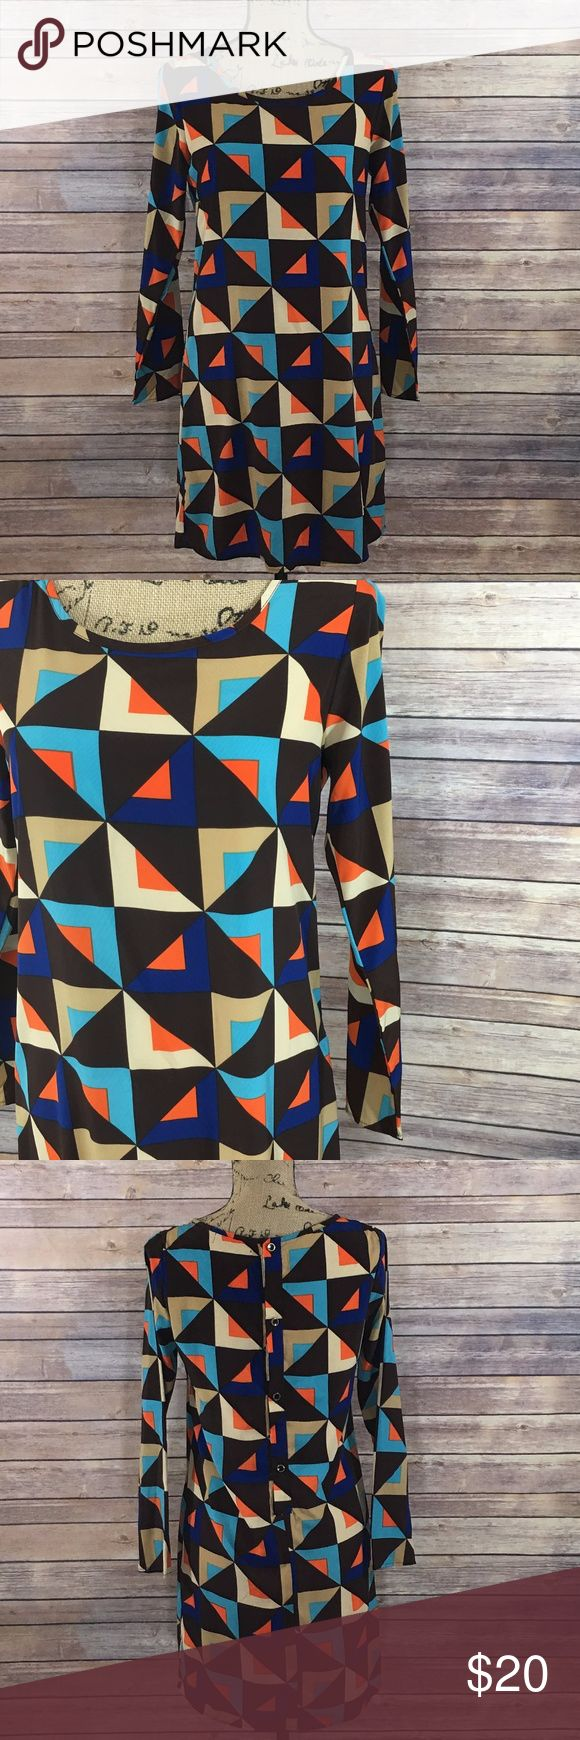 Opie & Lucy Dress Size Small Opie & Lucy Dress Brown Multi Color Geometric Print Gold Buttons down the back In excellent condition No signs of wear or fading Opie & Lucy Dresses